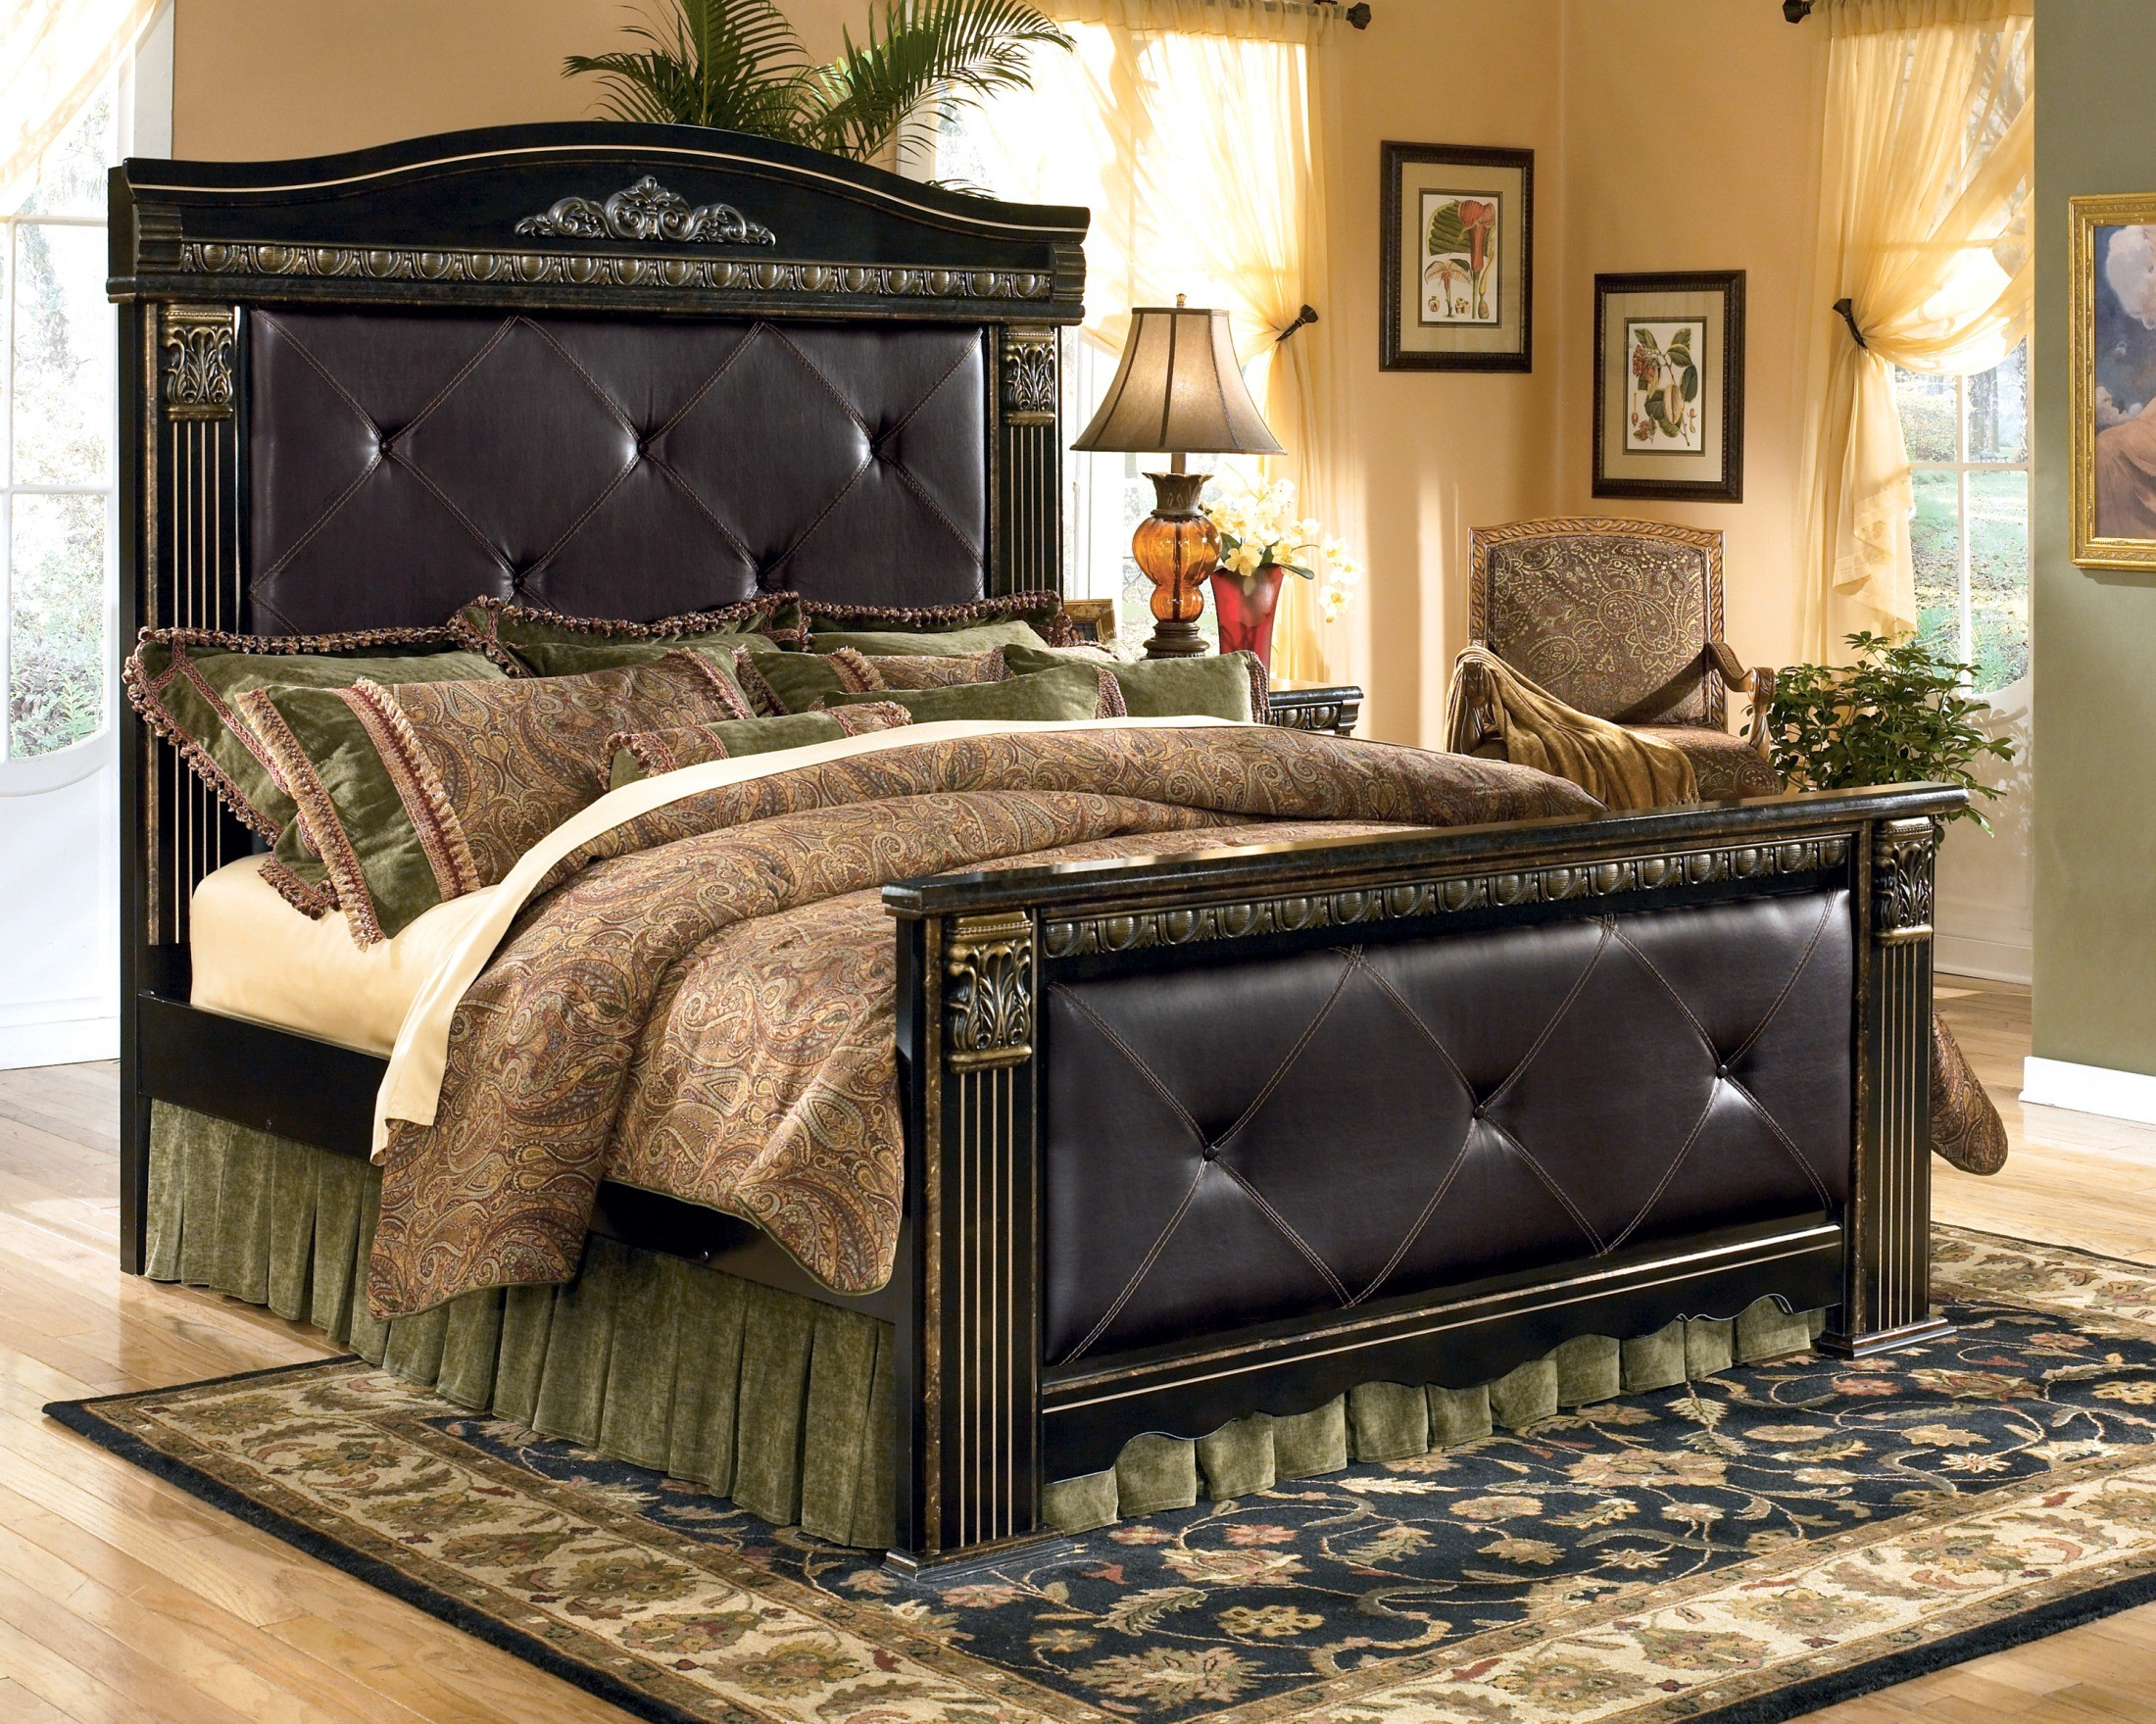 Coal Creek King Mansion Bed From Ashley (B175-58-56-99-62